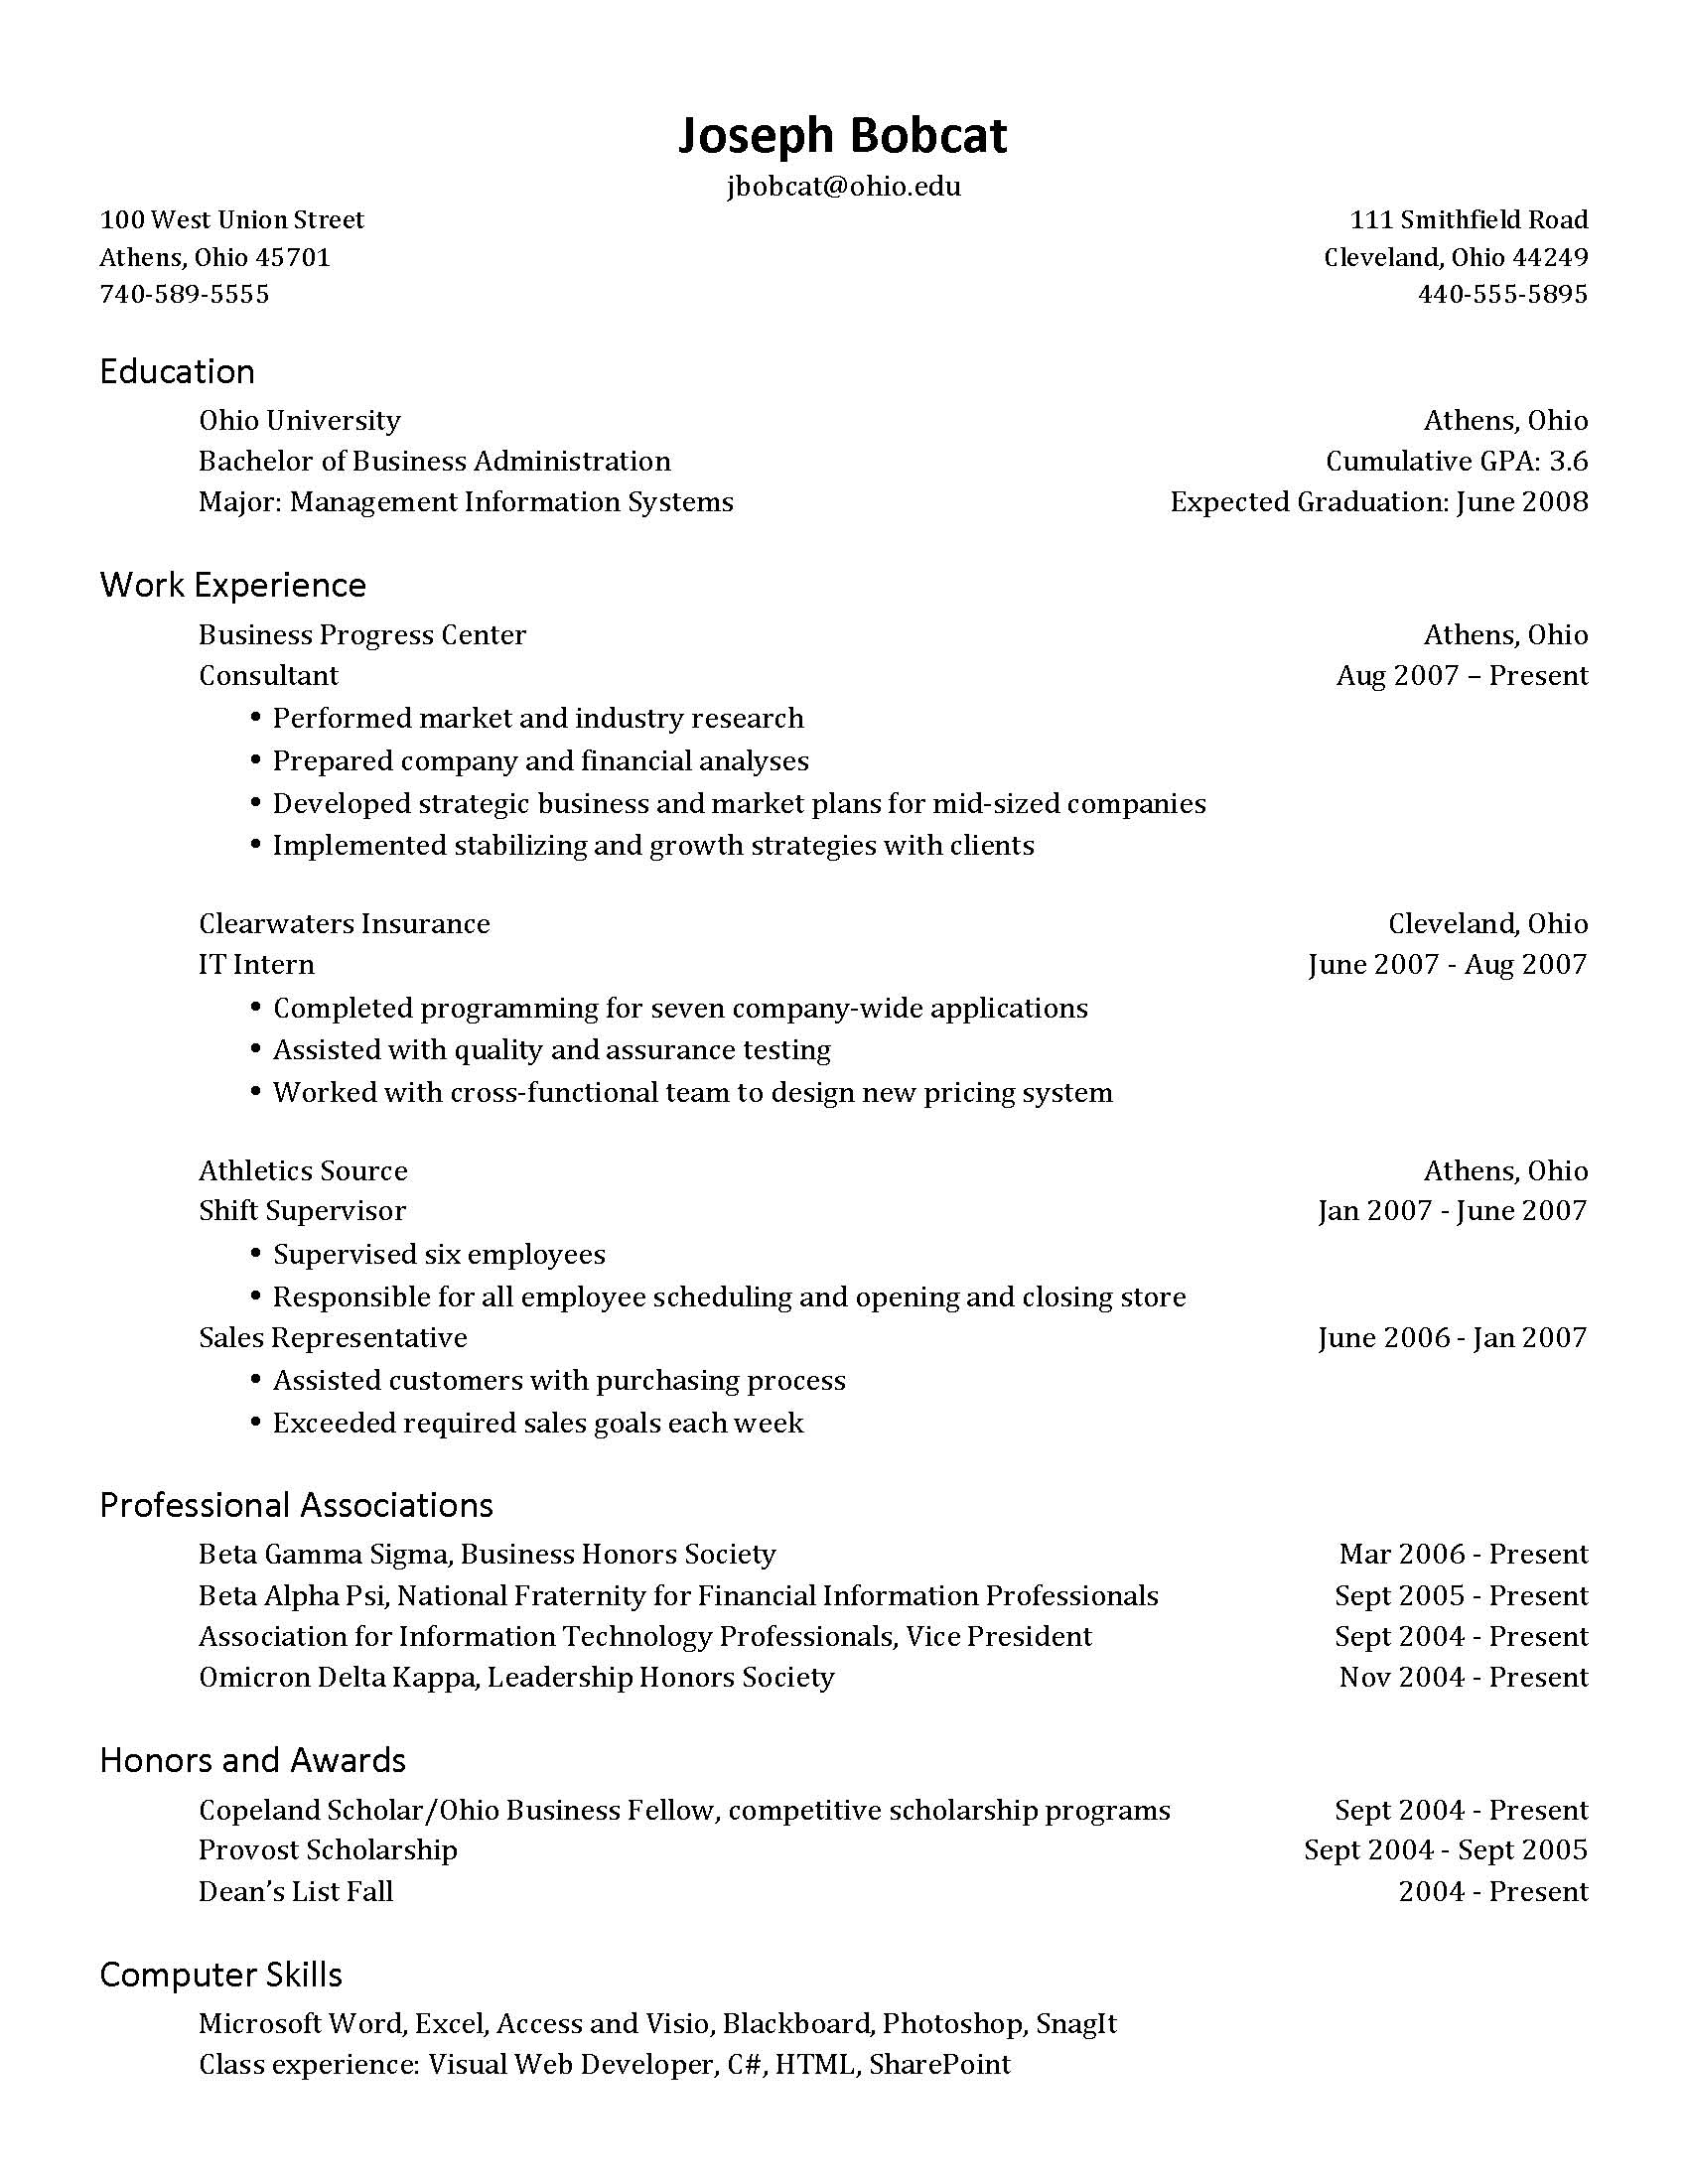 Submission of resume